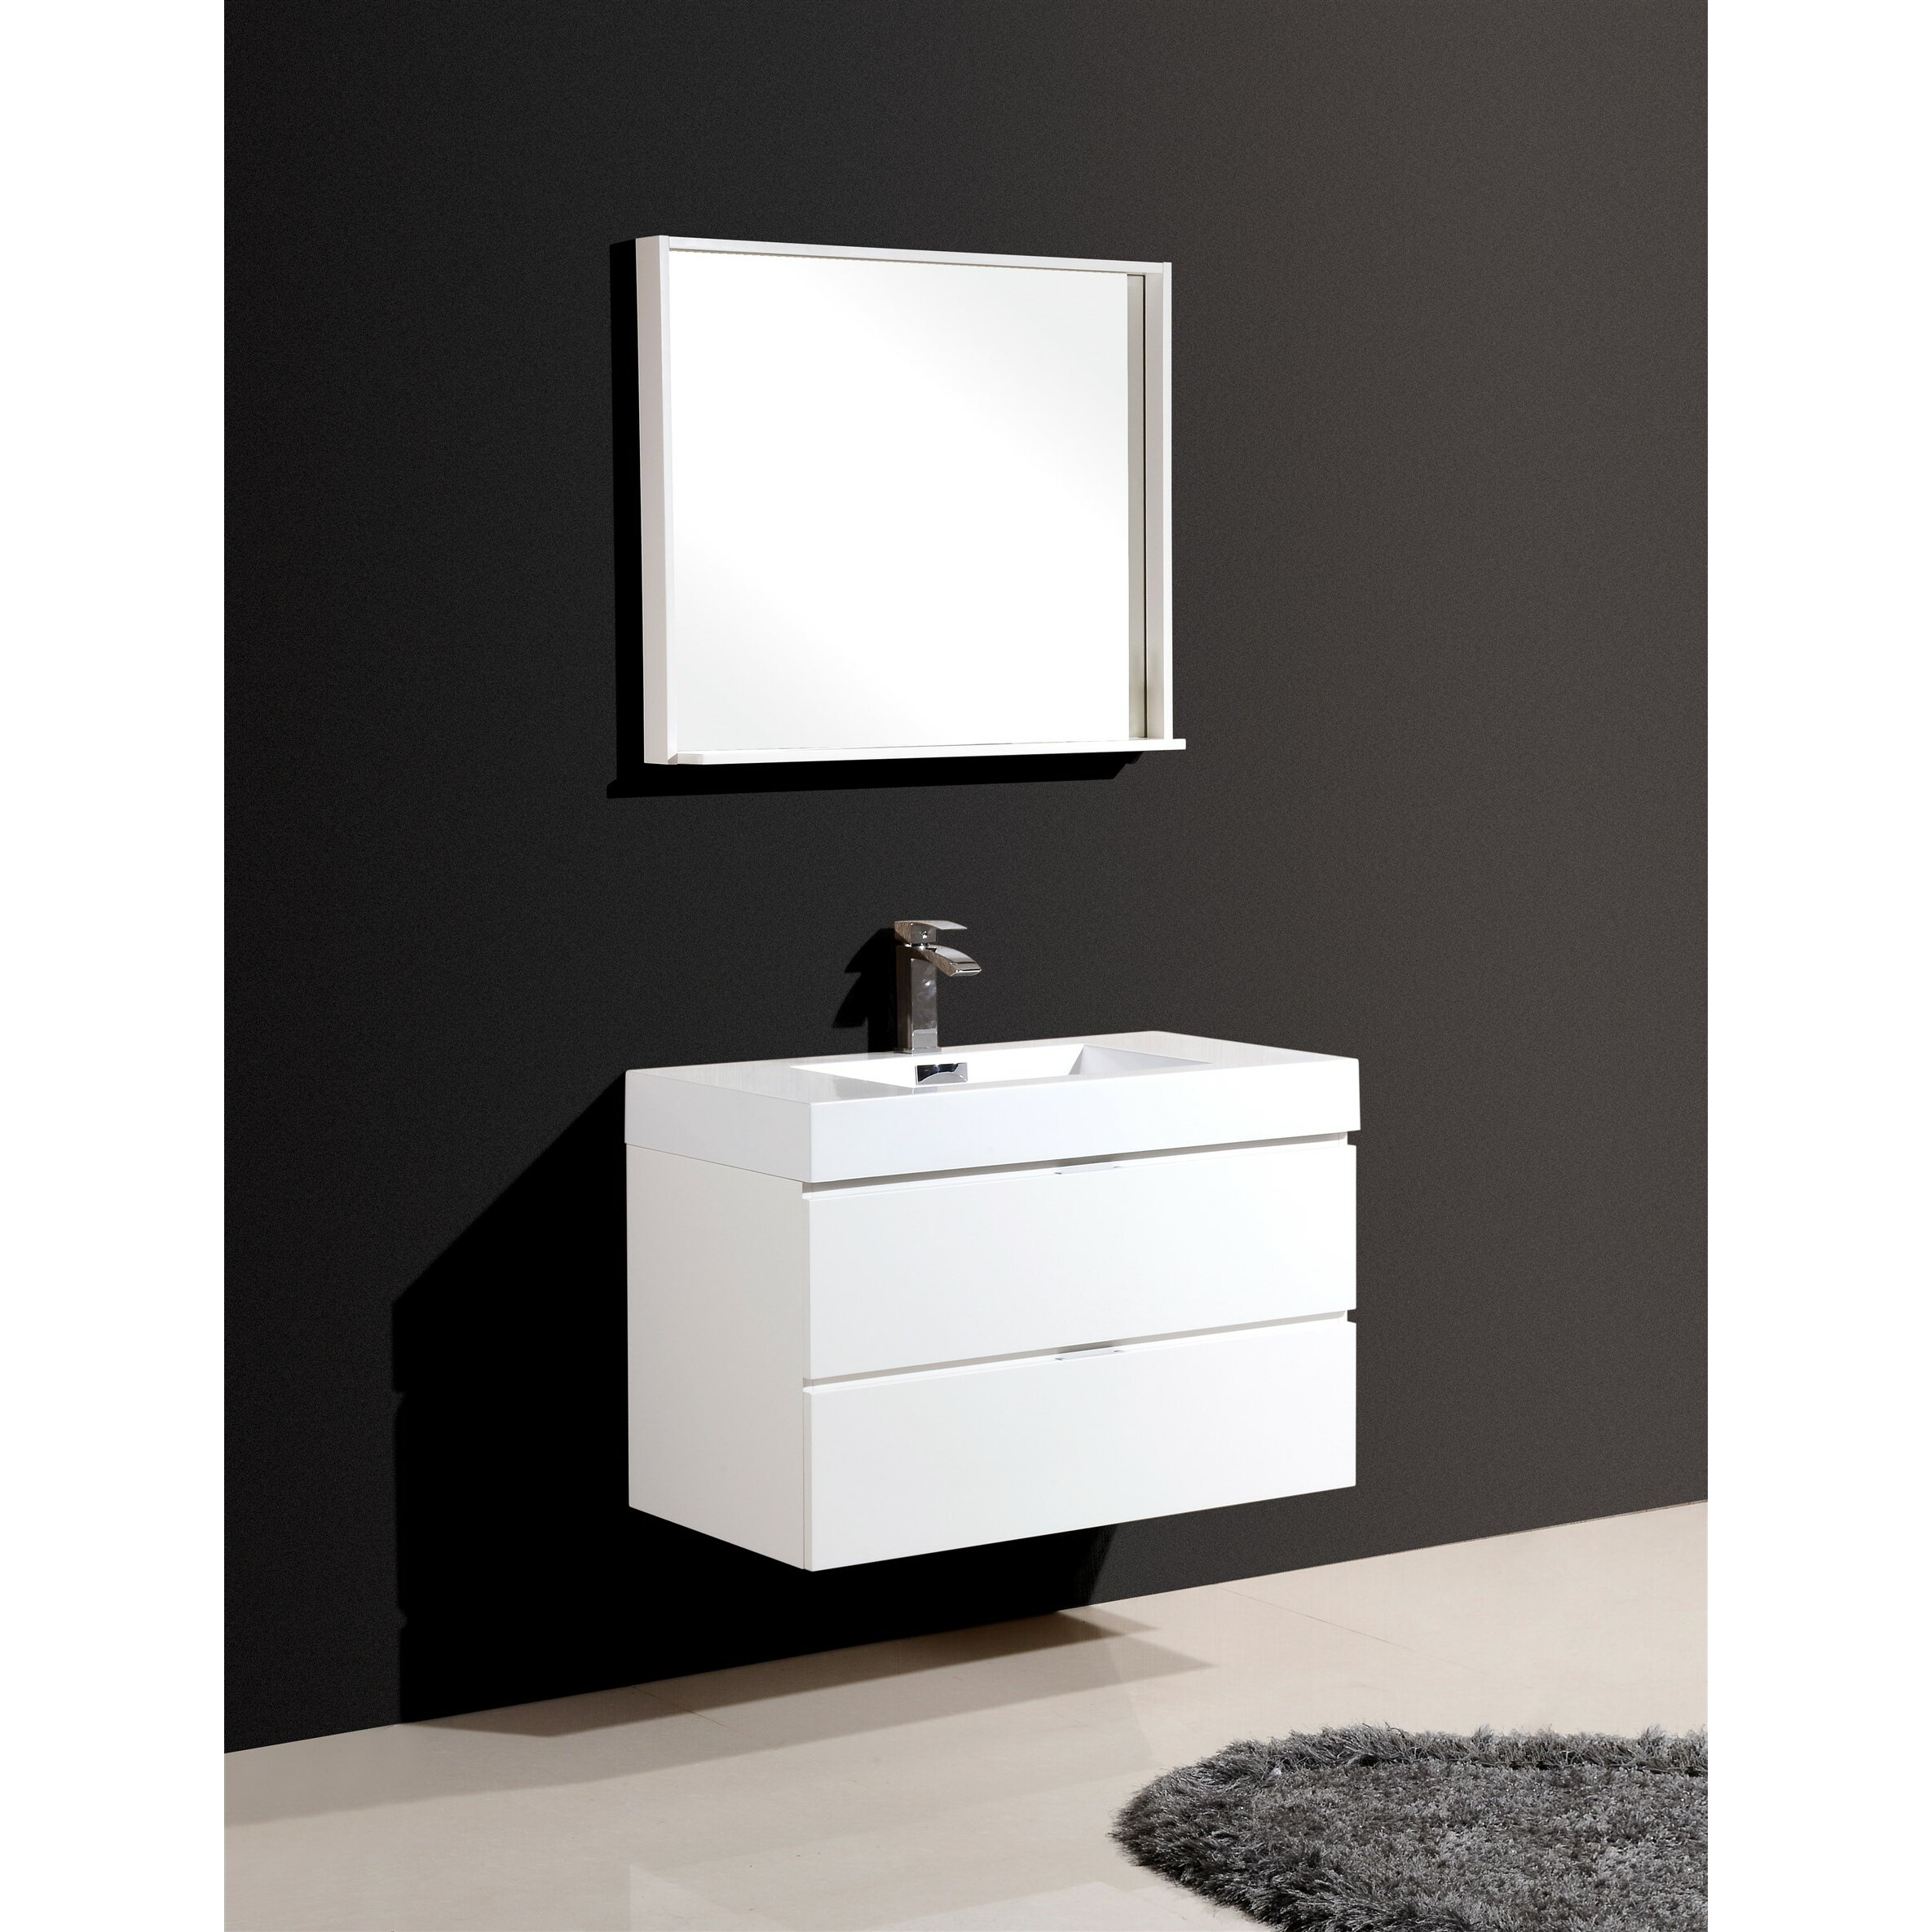 Kube bath bliss 36 single wall mount modern bathroom vanity set reviews wayfair - Kona modern bathroom vanity set ...